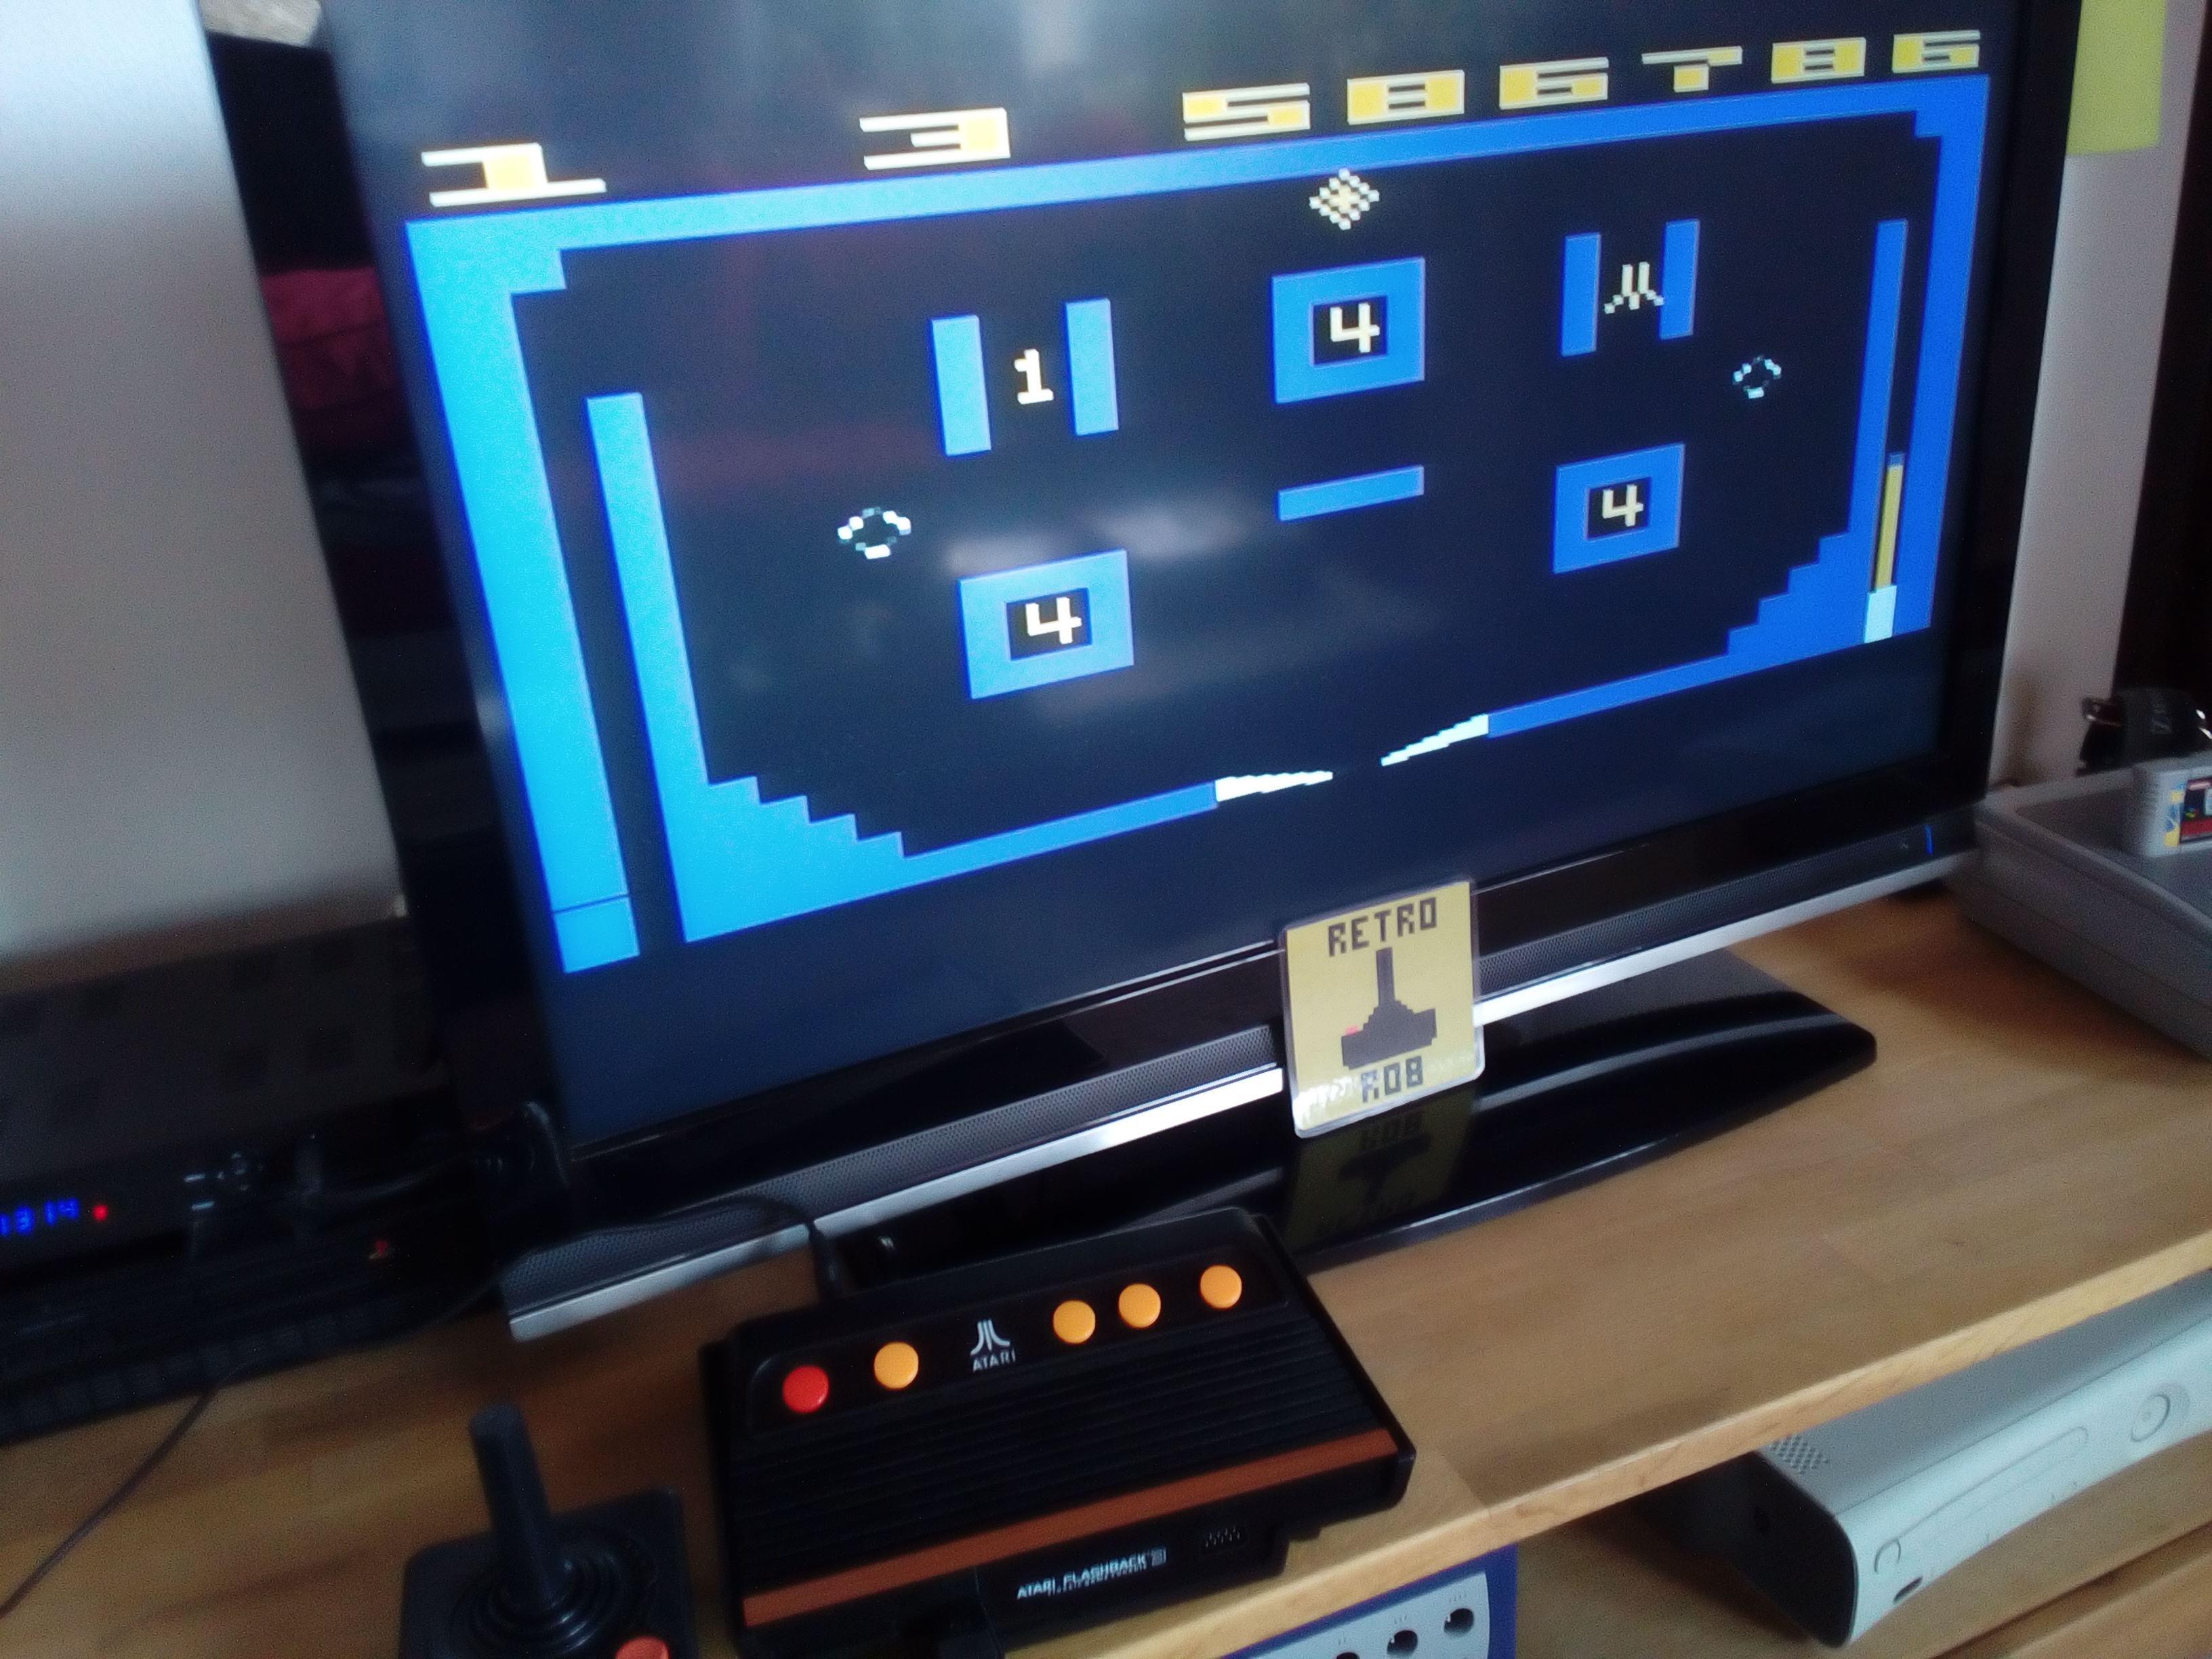 RetroRob: Video Pinball (Atari 2600 Emulated Novice/B Mode) 586,786 points on 2019-03-17 07:19:32